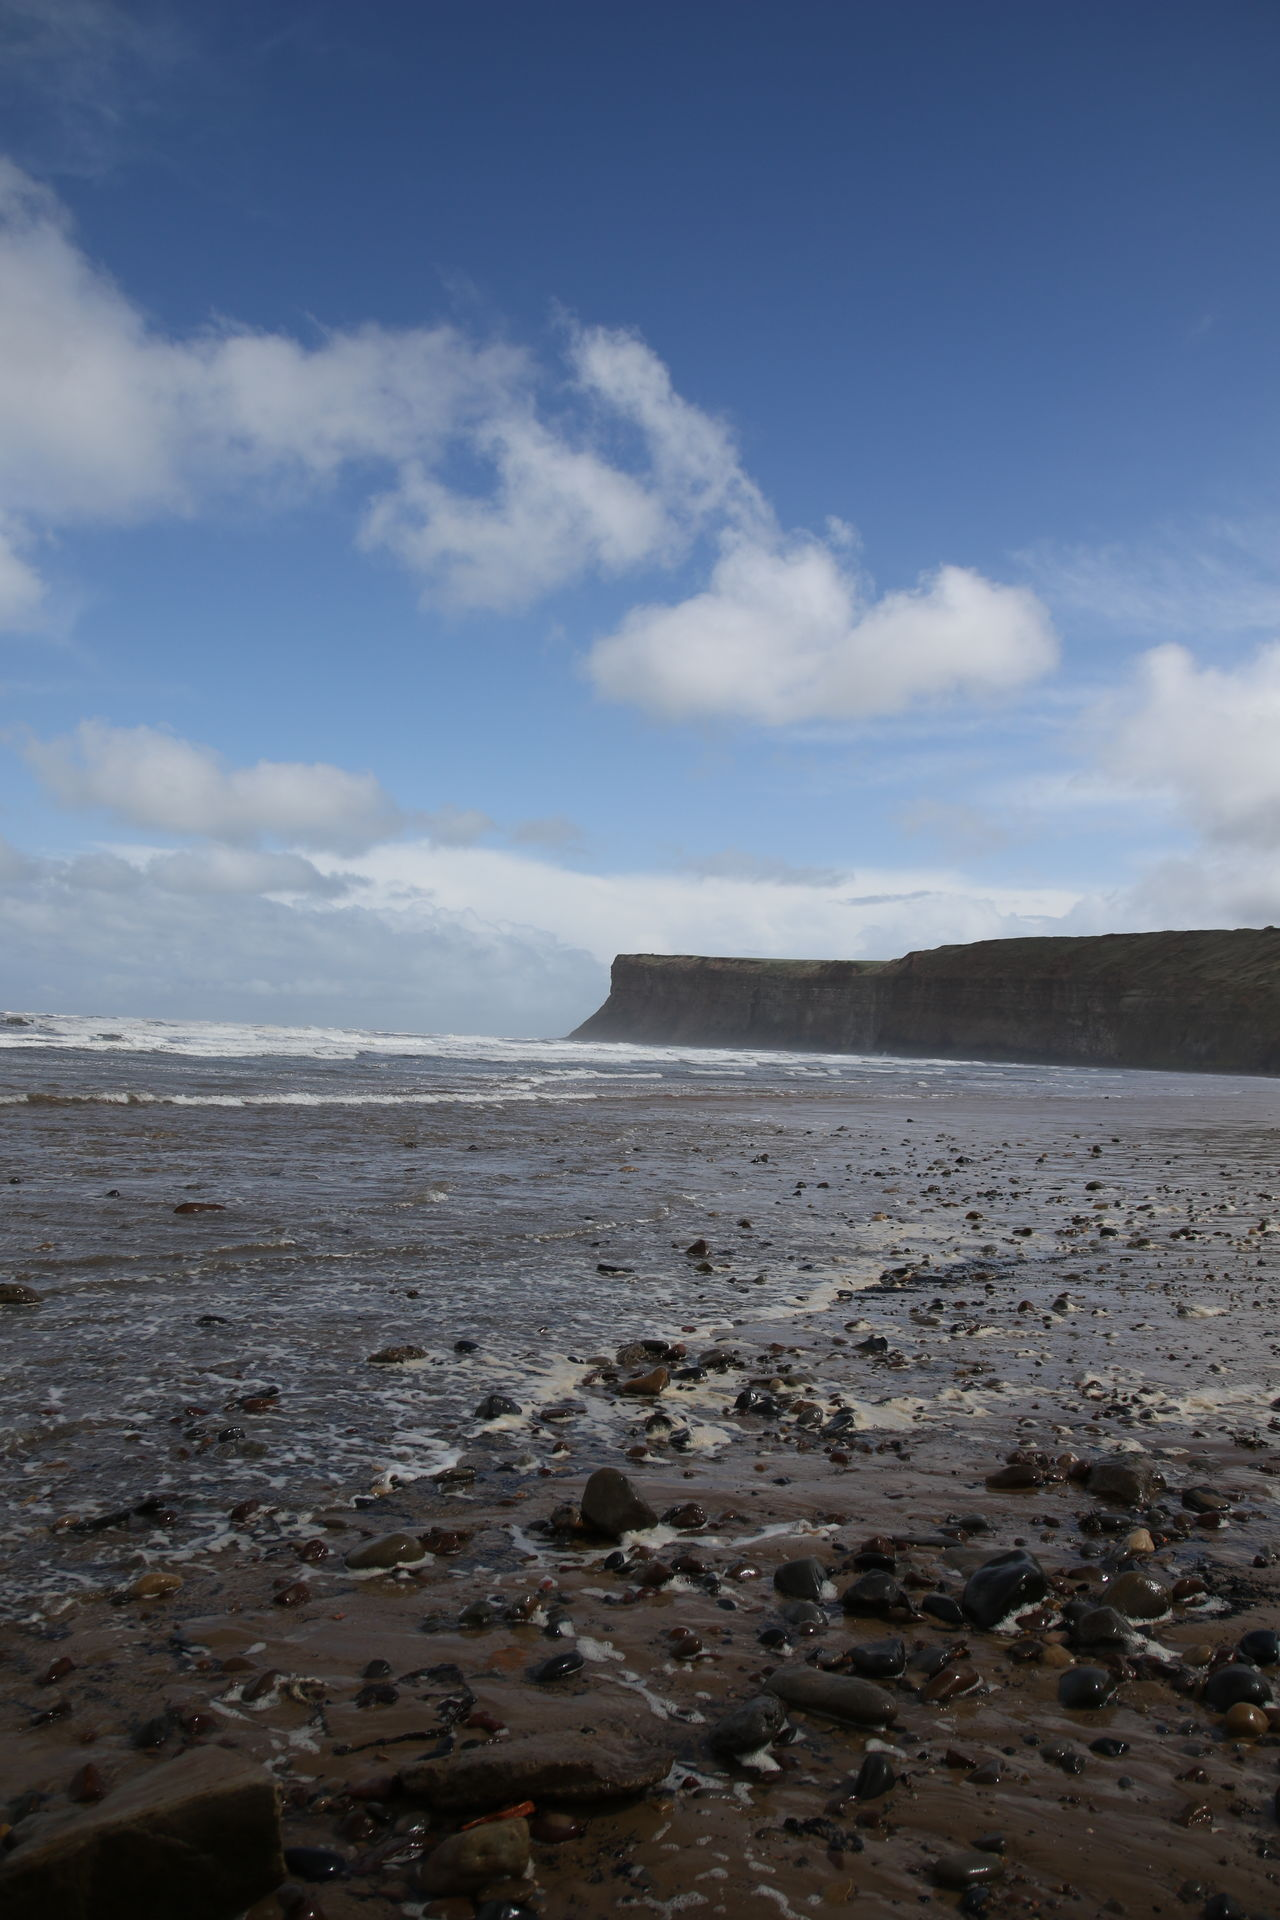 Beach Beauty In Nature Cloud - Sky Coast Coastline Day Headland Horizon Over Water Landscape Nature No People North Yorkshire Outdoors Pebbles On A Beach Saltburn By The Sea Scenics Sea Sky Tranquil Scene Tranquility Water Waves